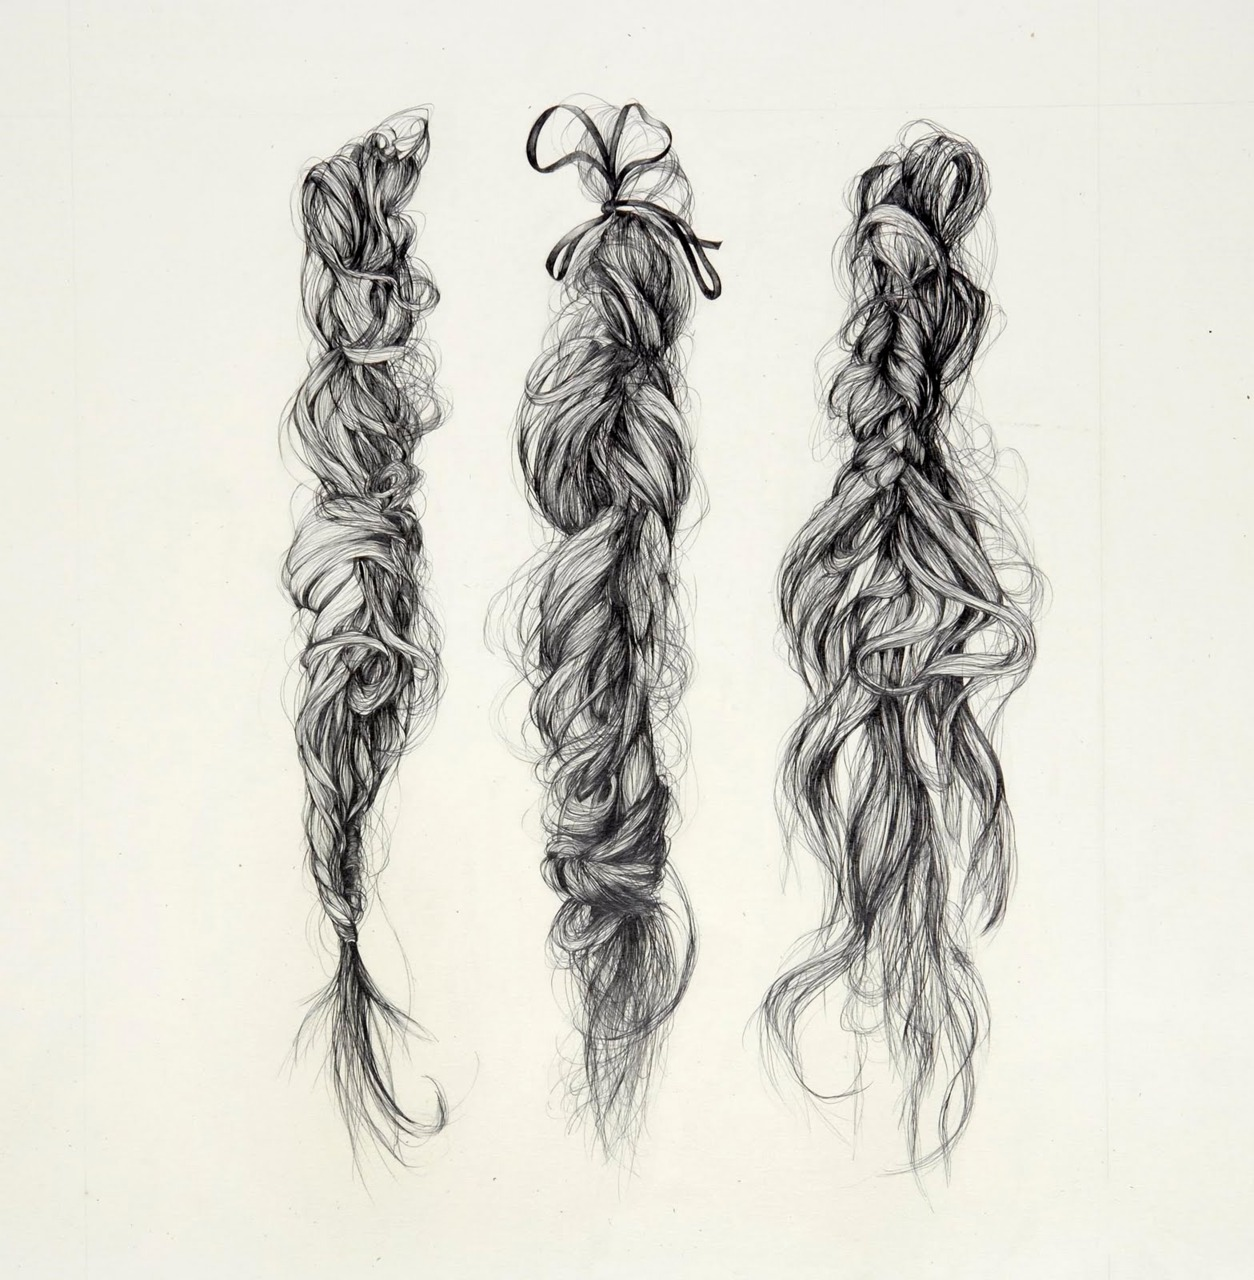 Drawn braid anime Graphite  your Rapunzel hair